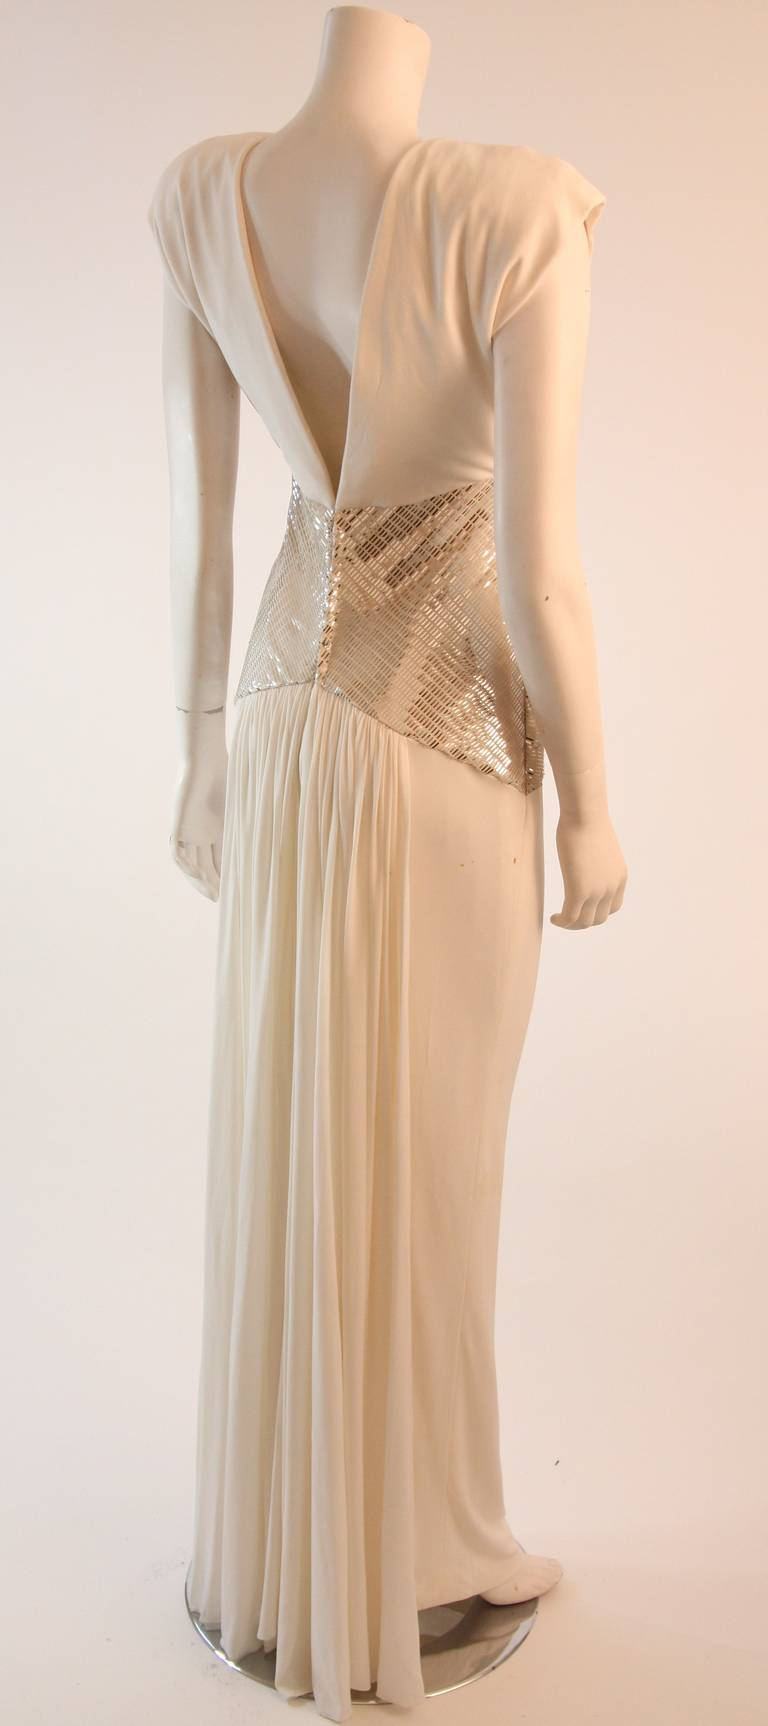 Vicky Tiel Futurism White Column Gown with Metallic Waist Detail 4-6 8